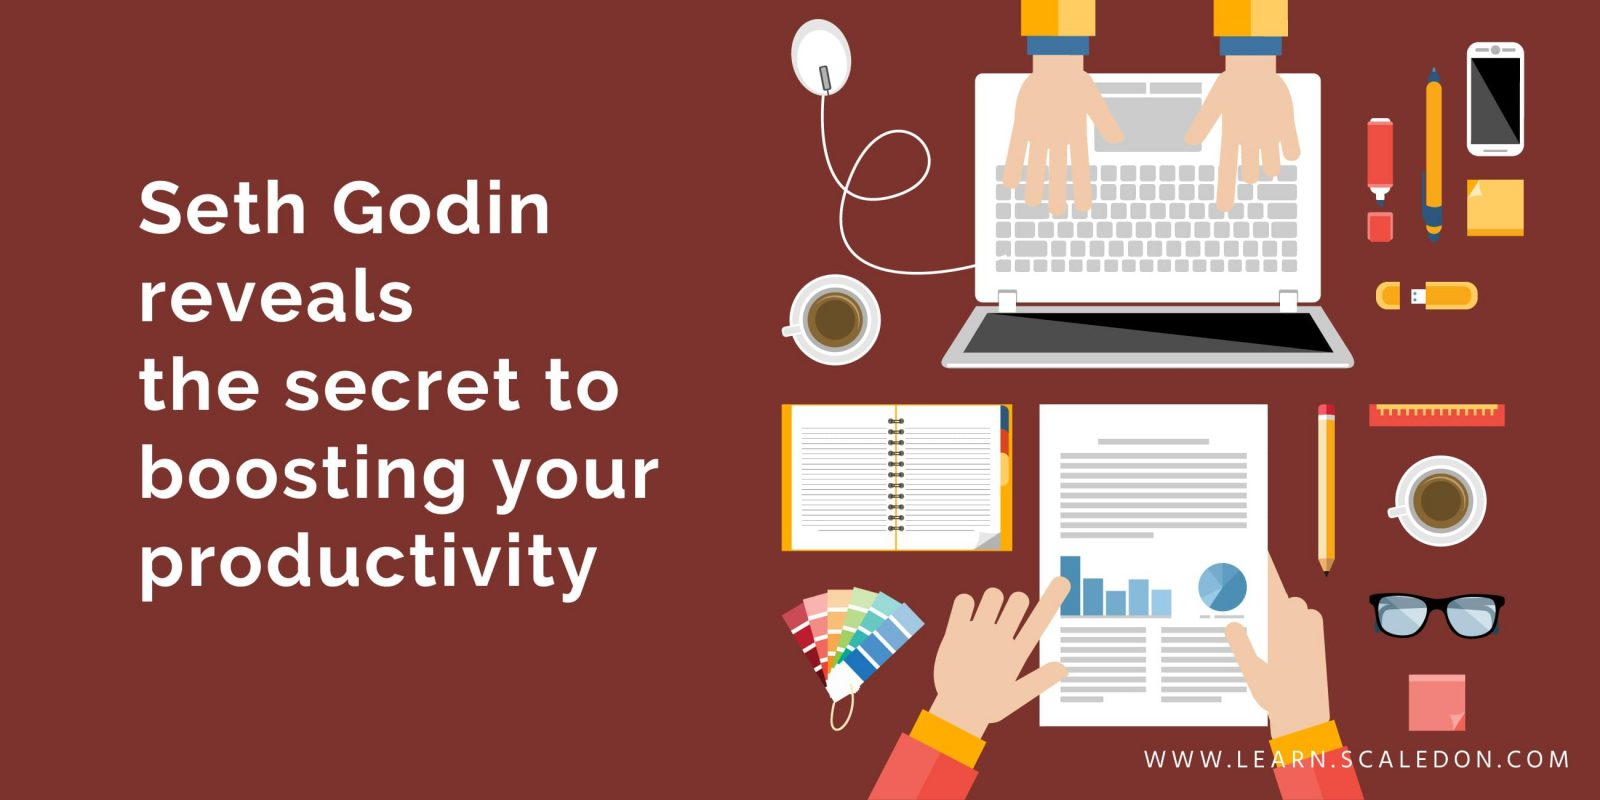 Seth Godin reveals the secret to boosting your productivity